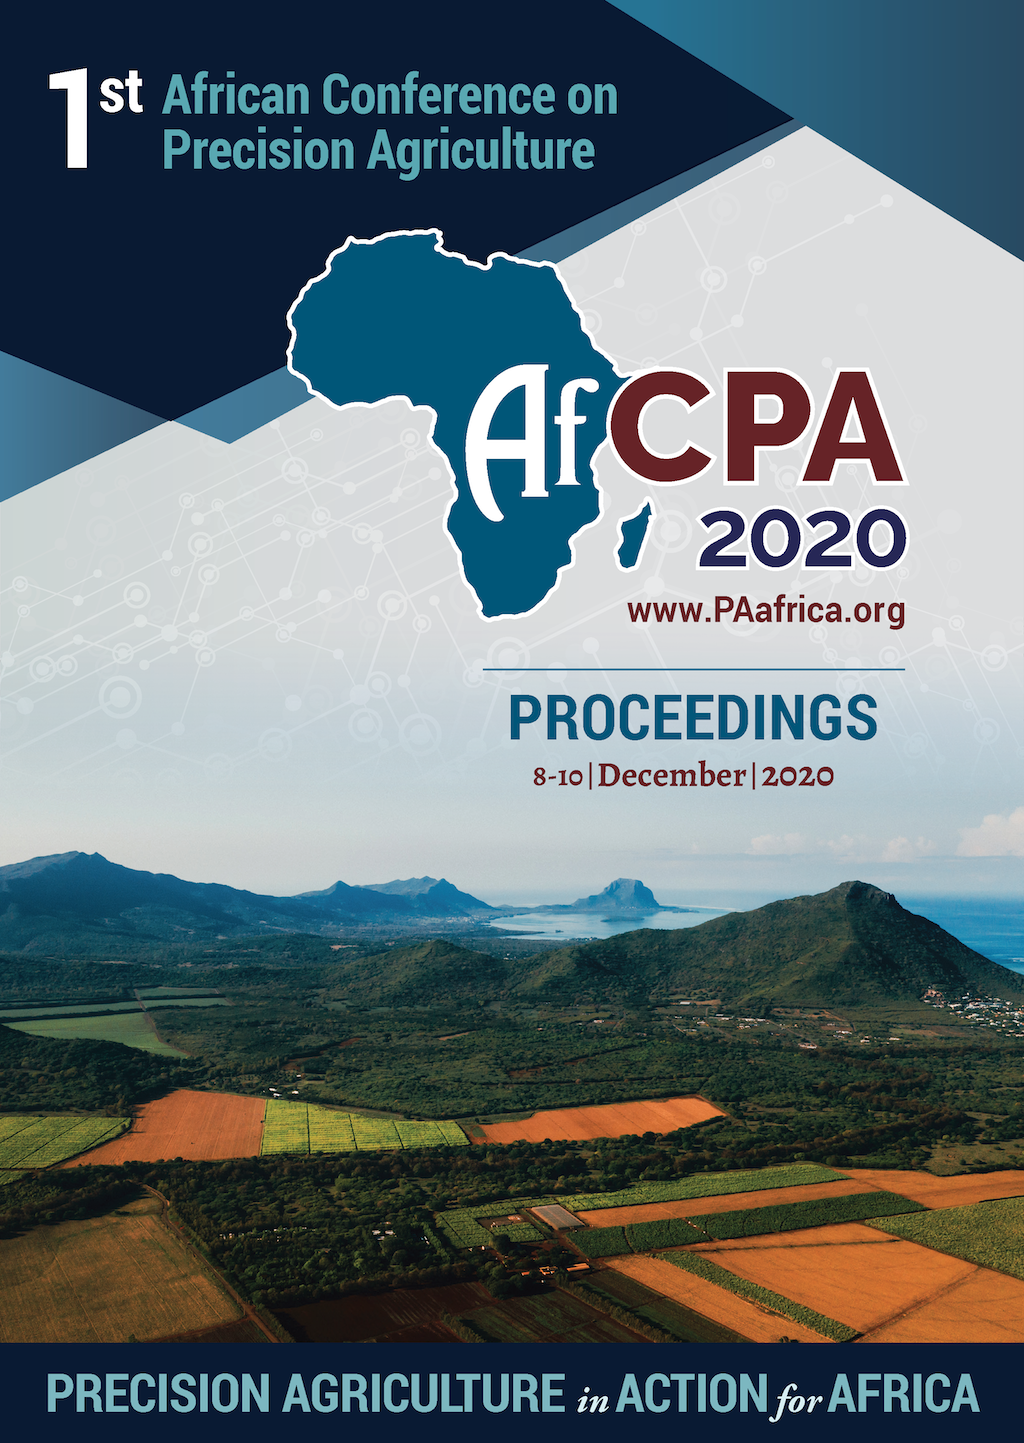 Proceedings of 1st African Conference of Precision Agriculture Image